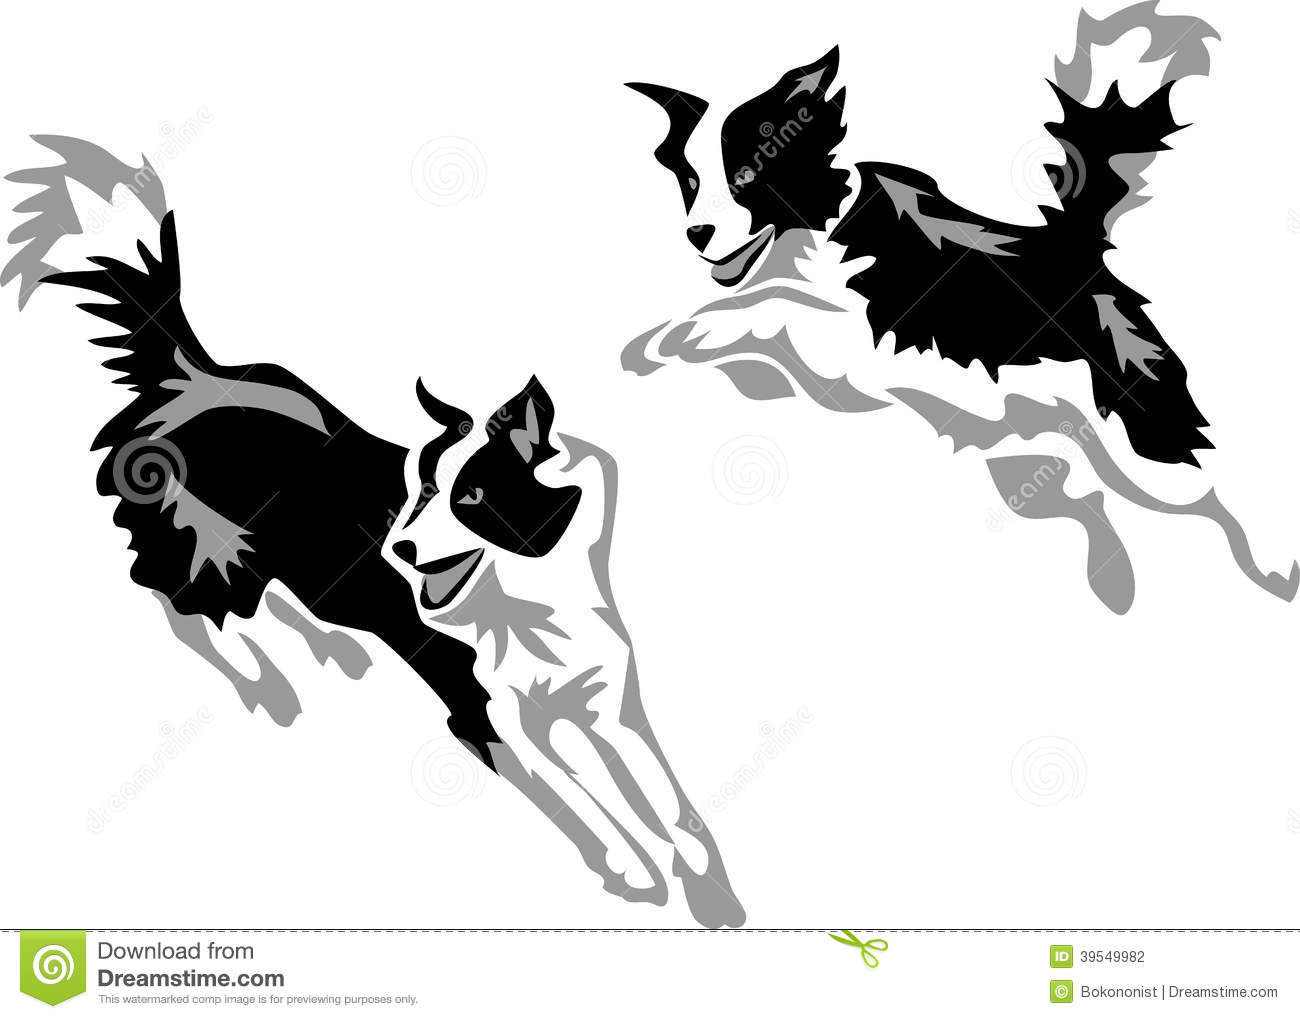 Border Collie clipart #12, Download drawings